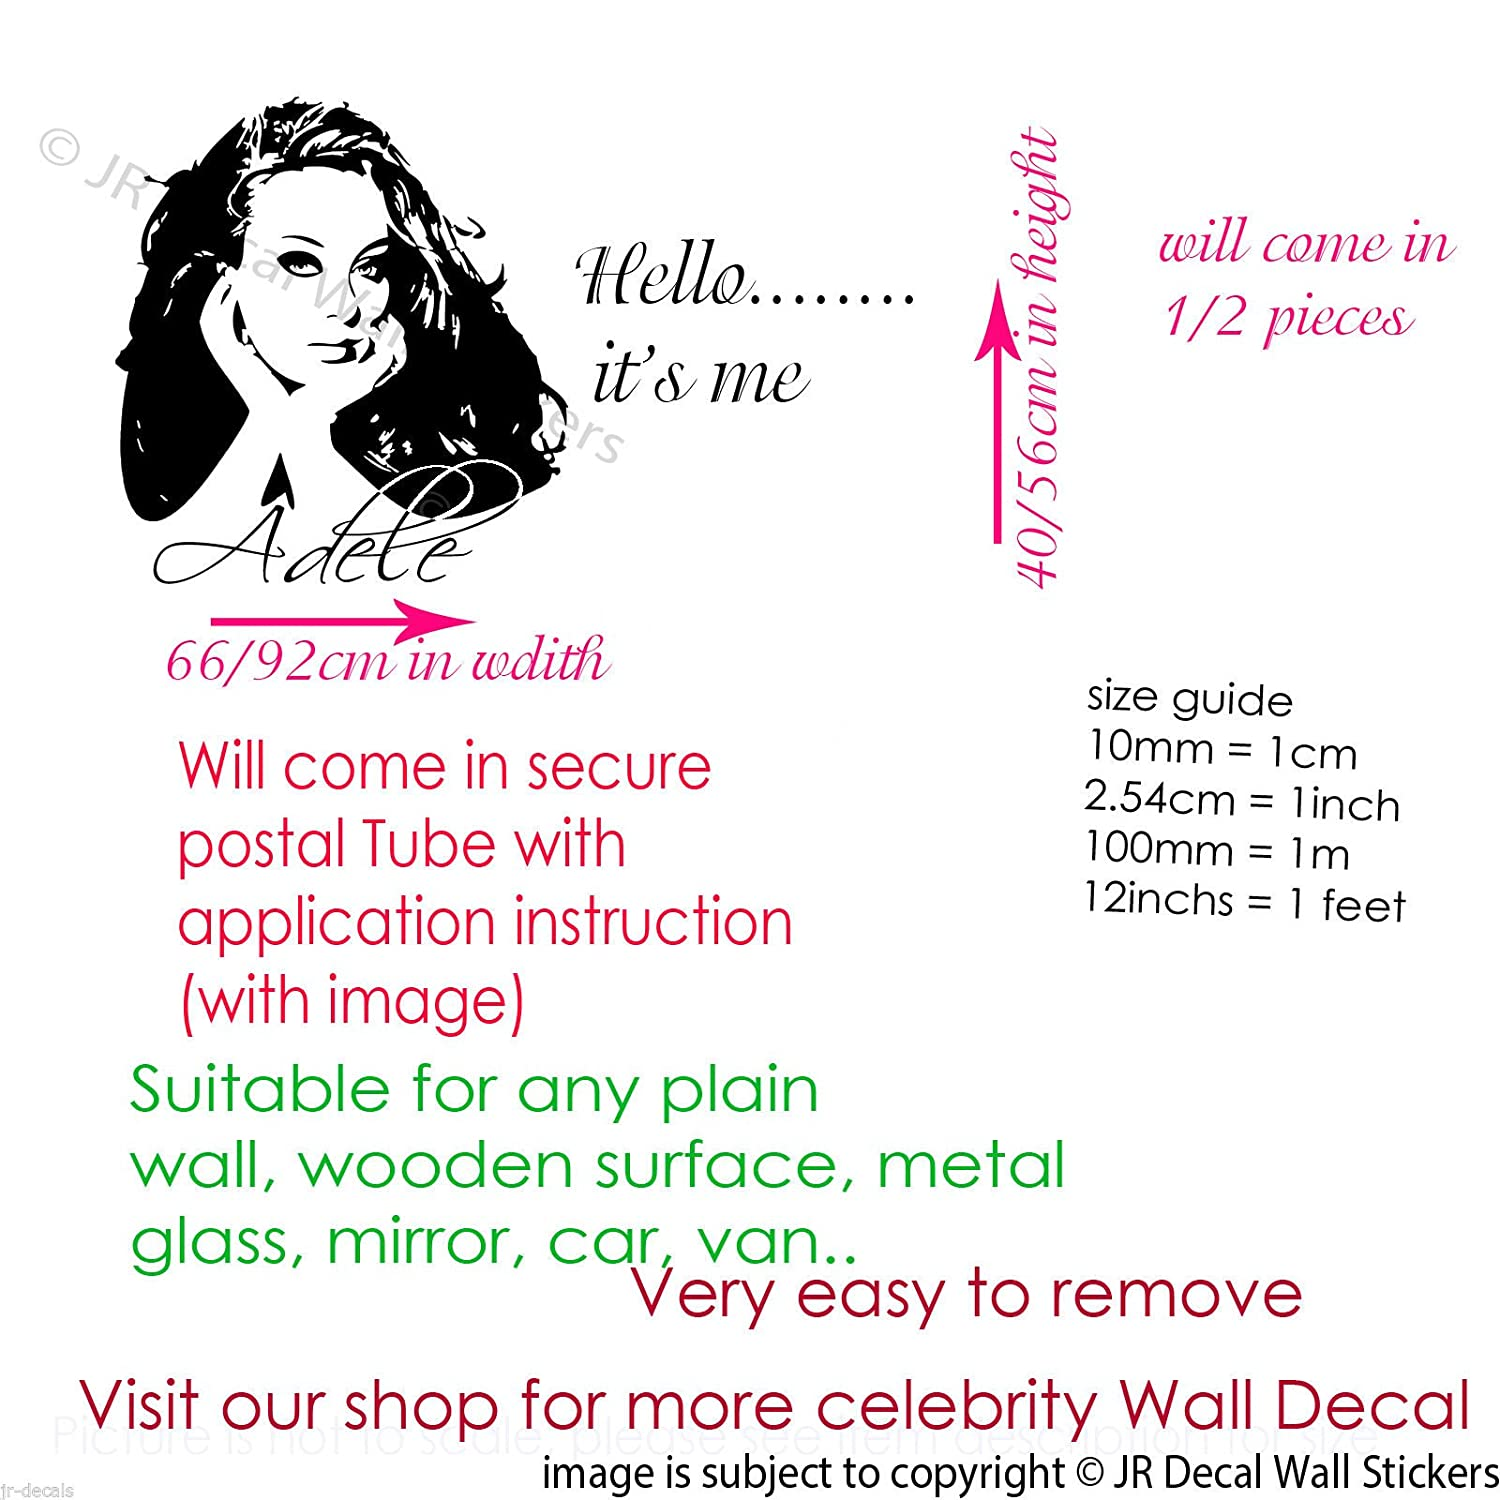 Amazon adele wall stickers celebrity wall art decal adele amazon adele wall stickers celebrity wall art decal adele hello its me removable vinyl home decor handmade amipublicfo Image collections